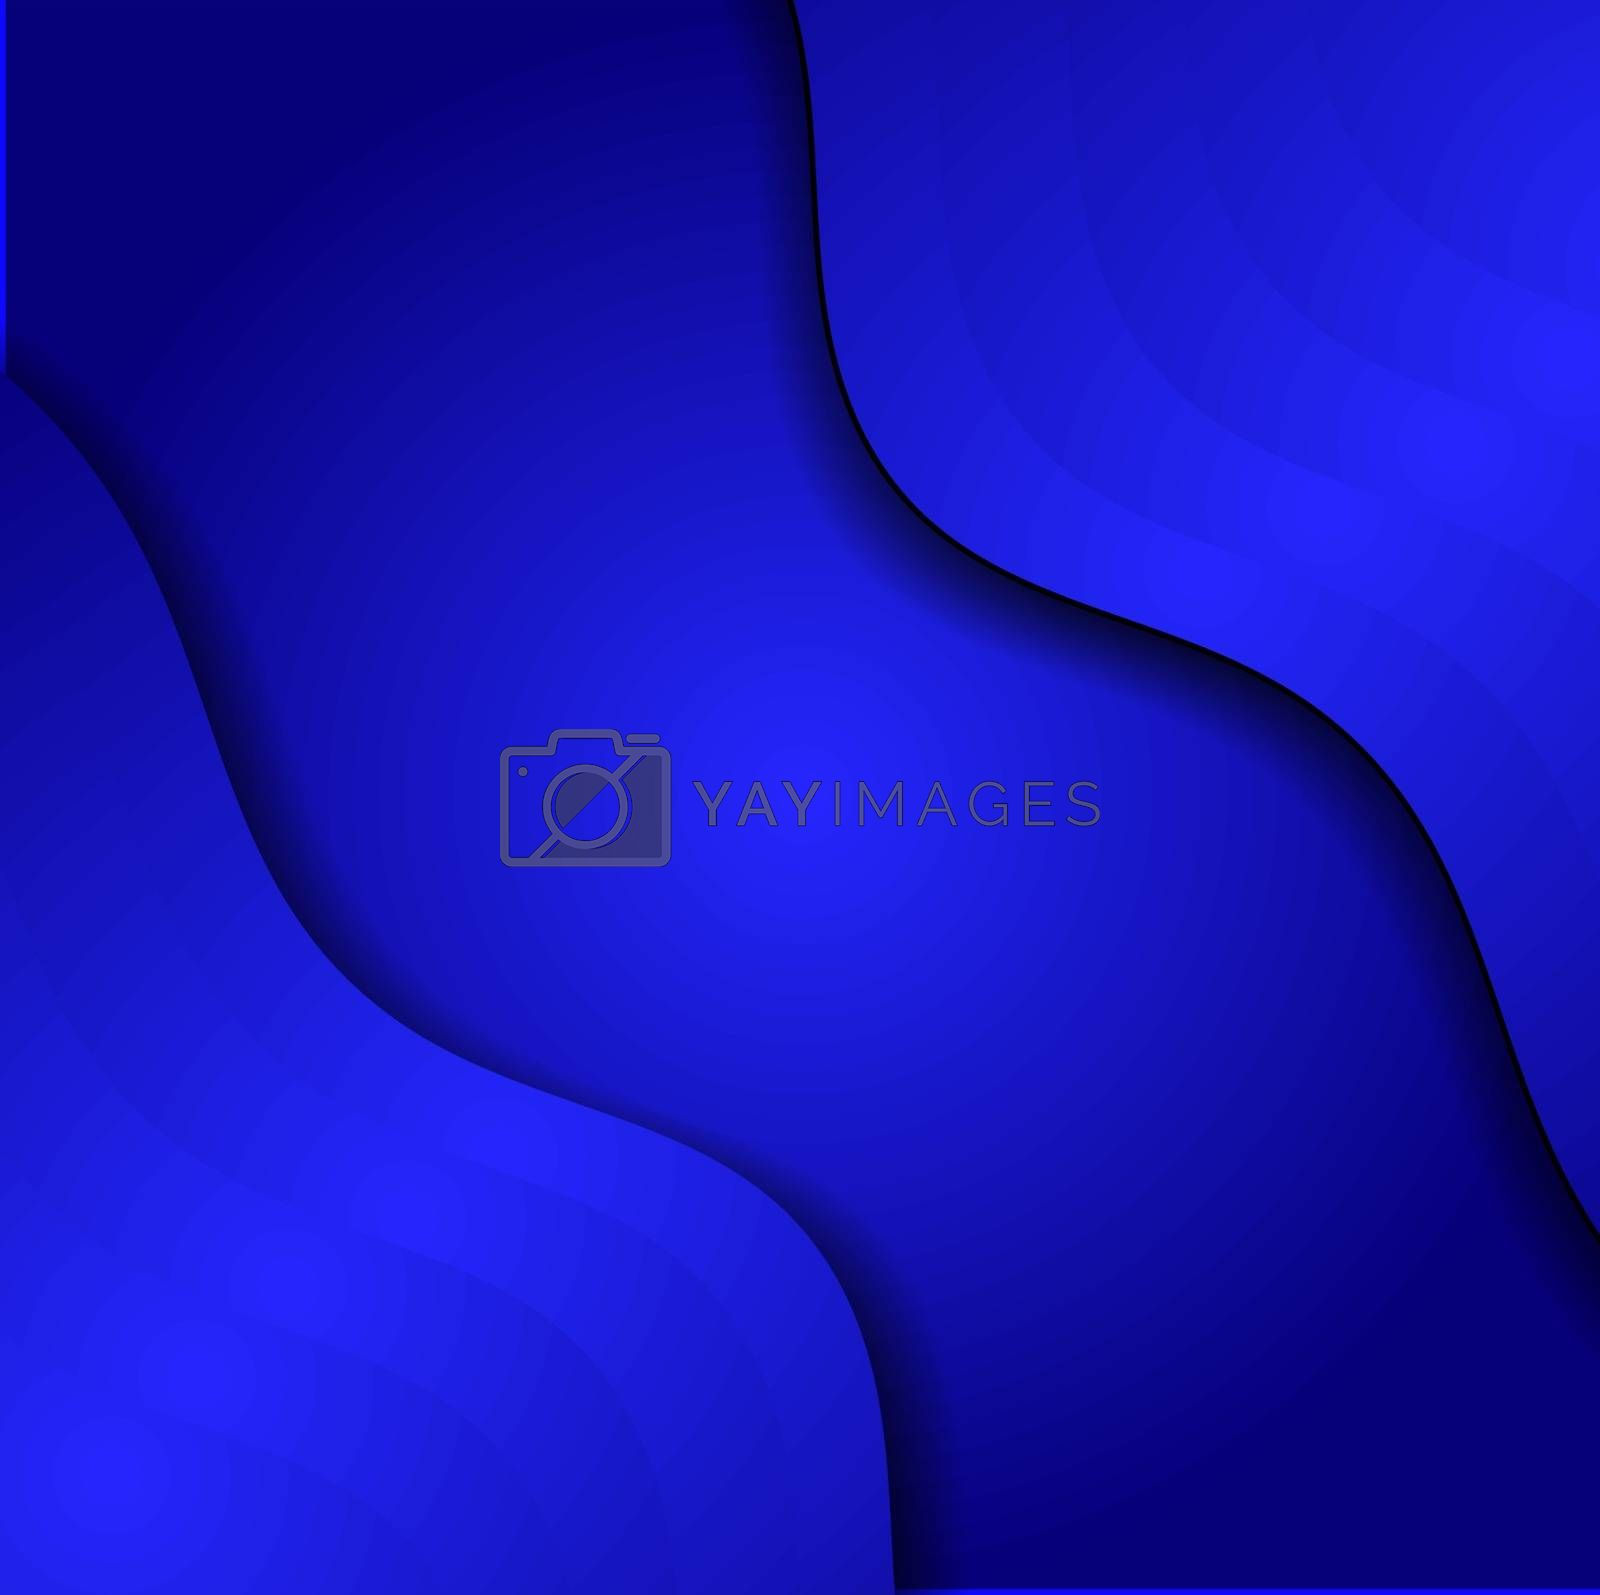 Blue cloth texture backgrounden cloth texture background